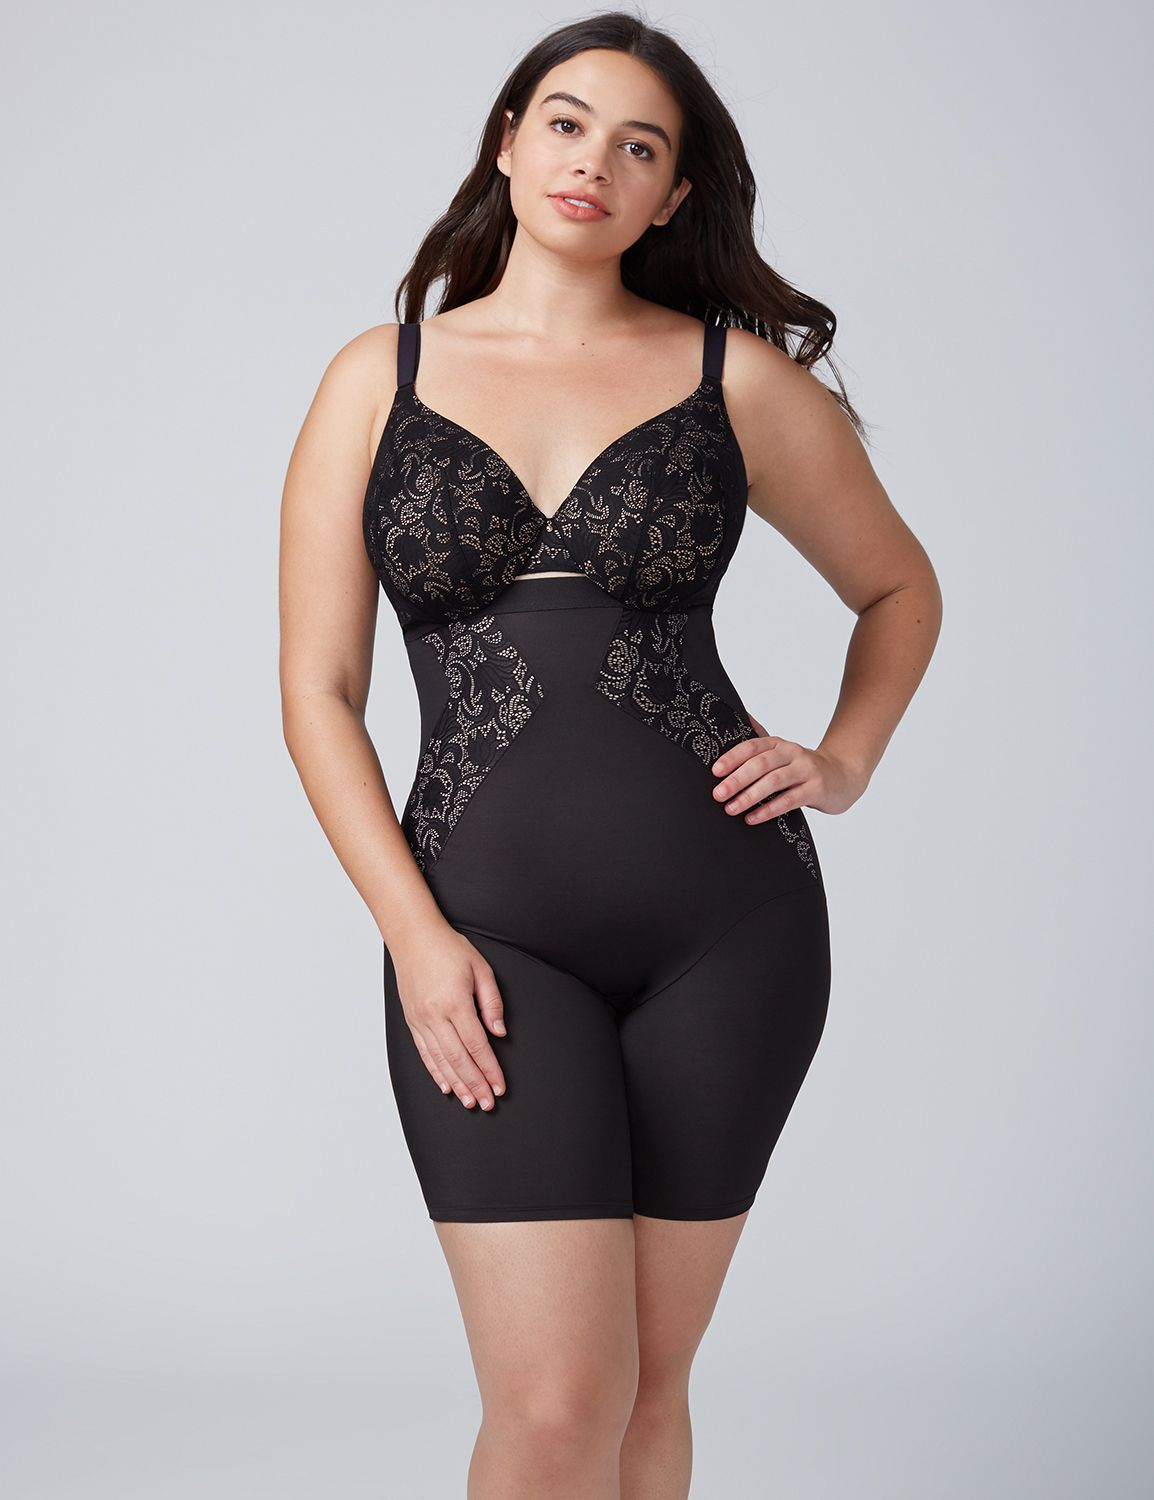 Lane Bryant Womens Shape By Cacique High-Waist Thigh Shaper With Lace 14/16 Black